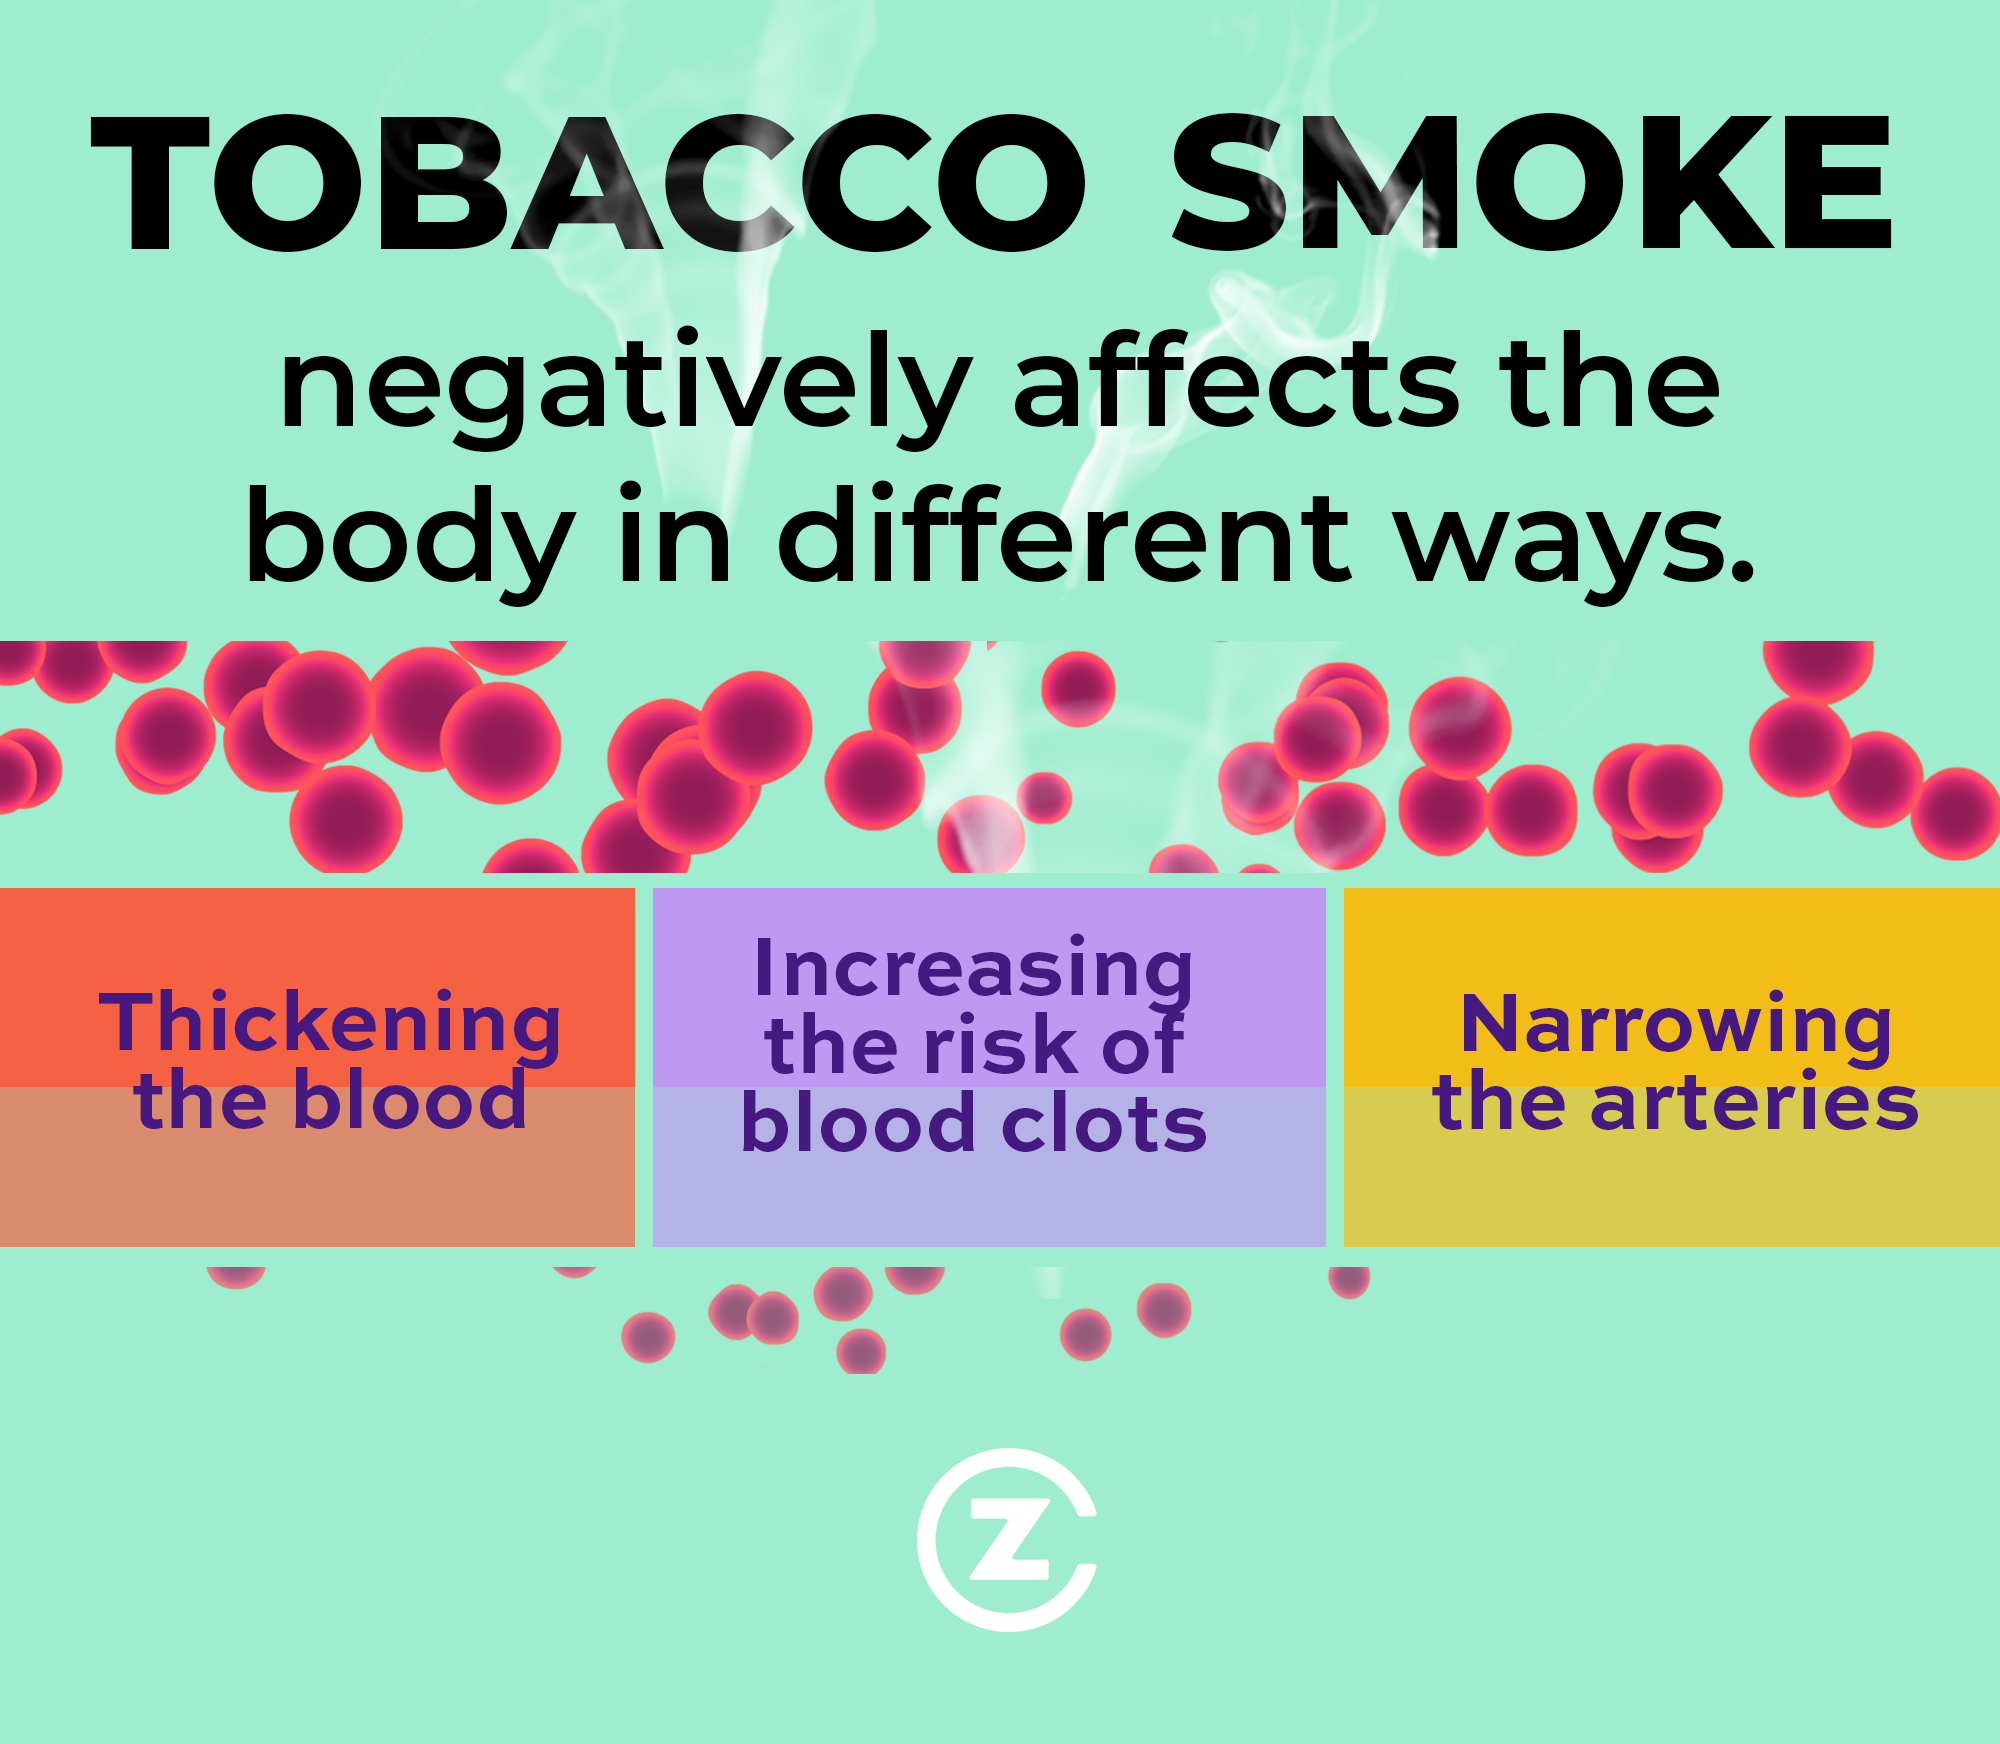 Tobacco Smoke negatively affects the body in different ways.